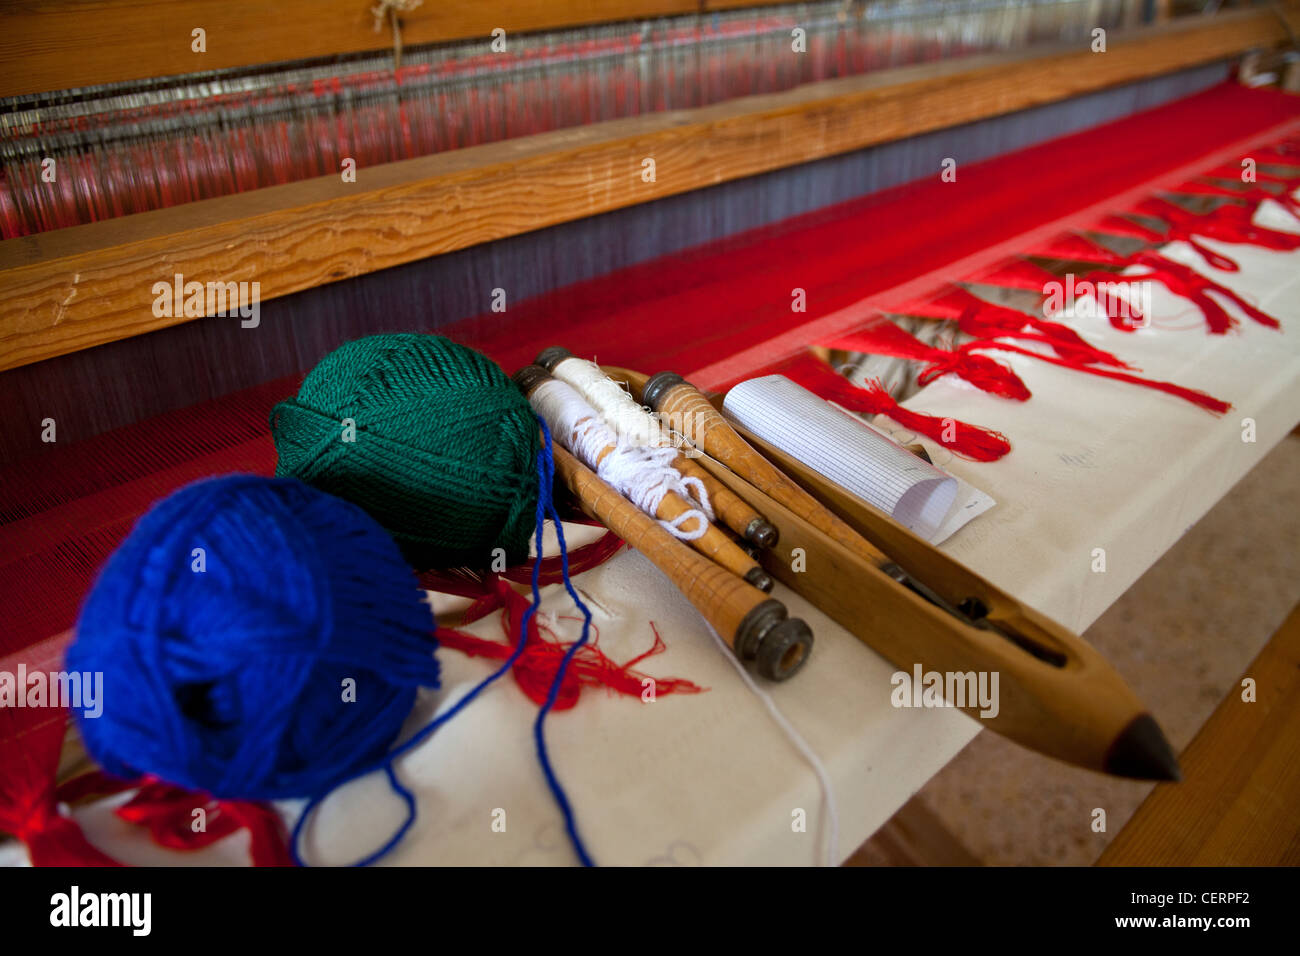 Photograph of an old traditional loom with colorful cotton threads and related tools on it, Zagorohoria, Ioannina, - Stock Image